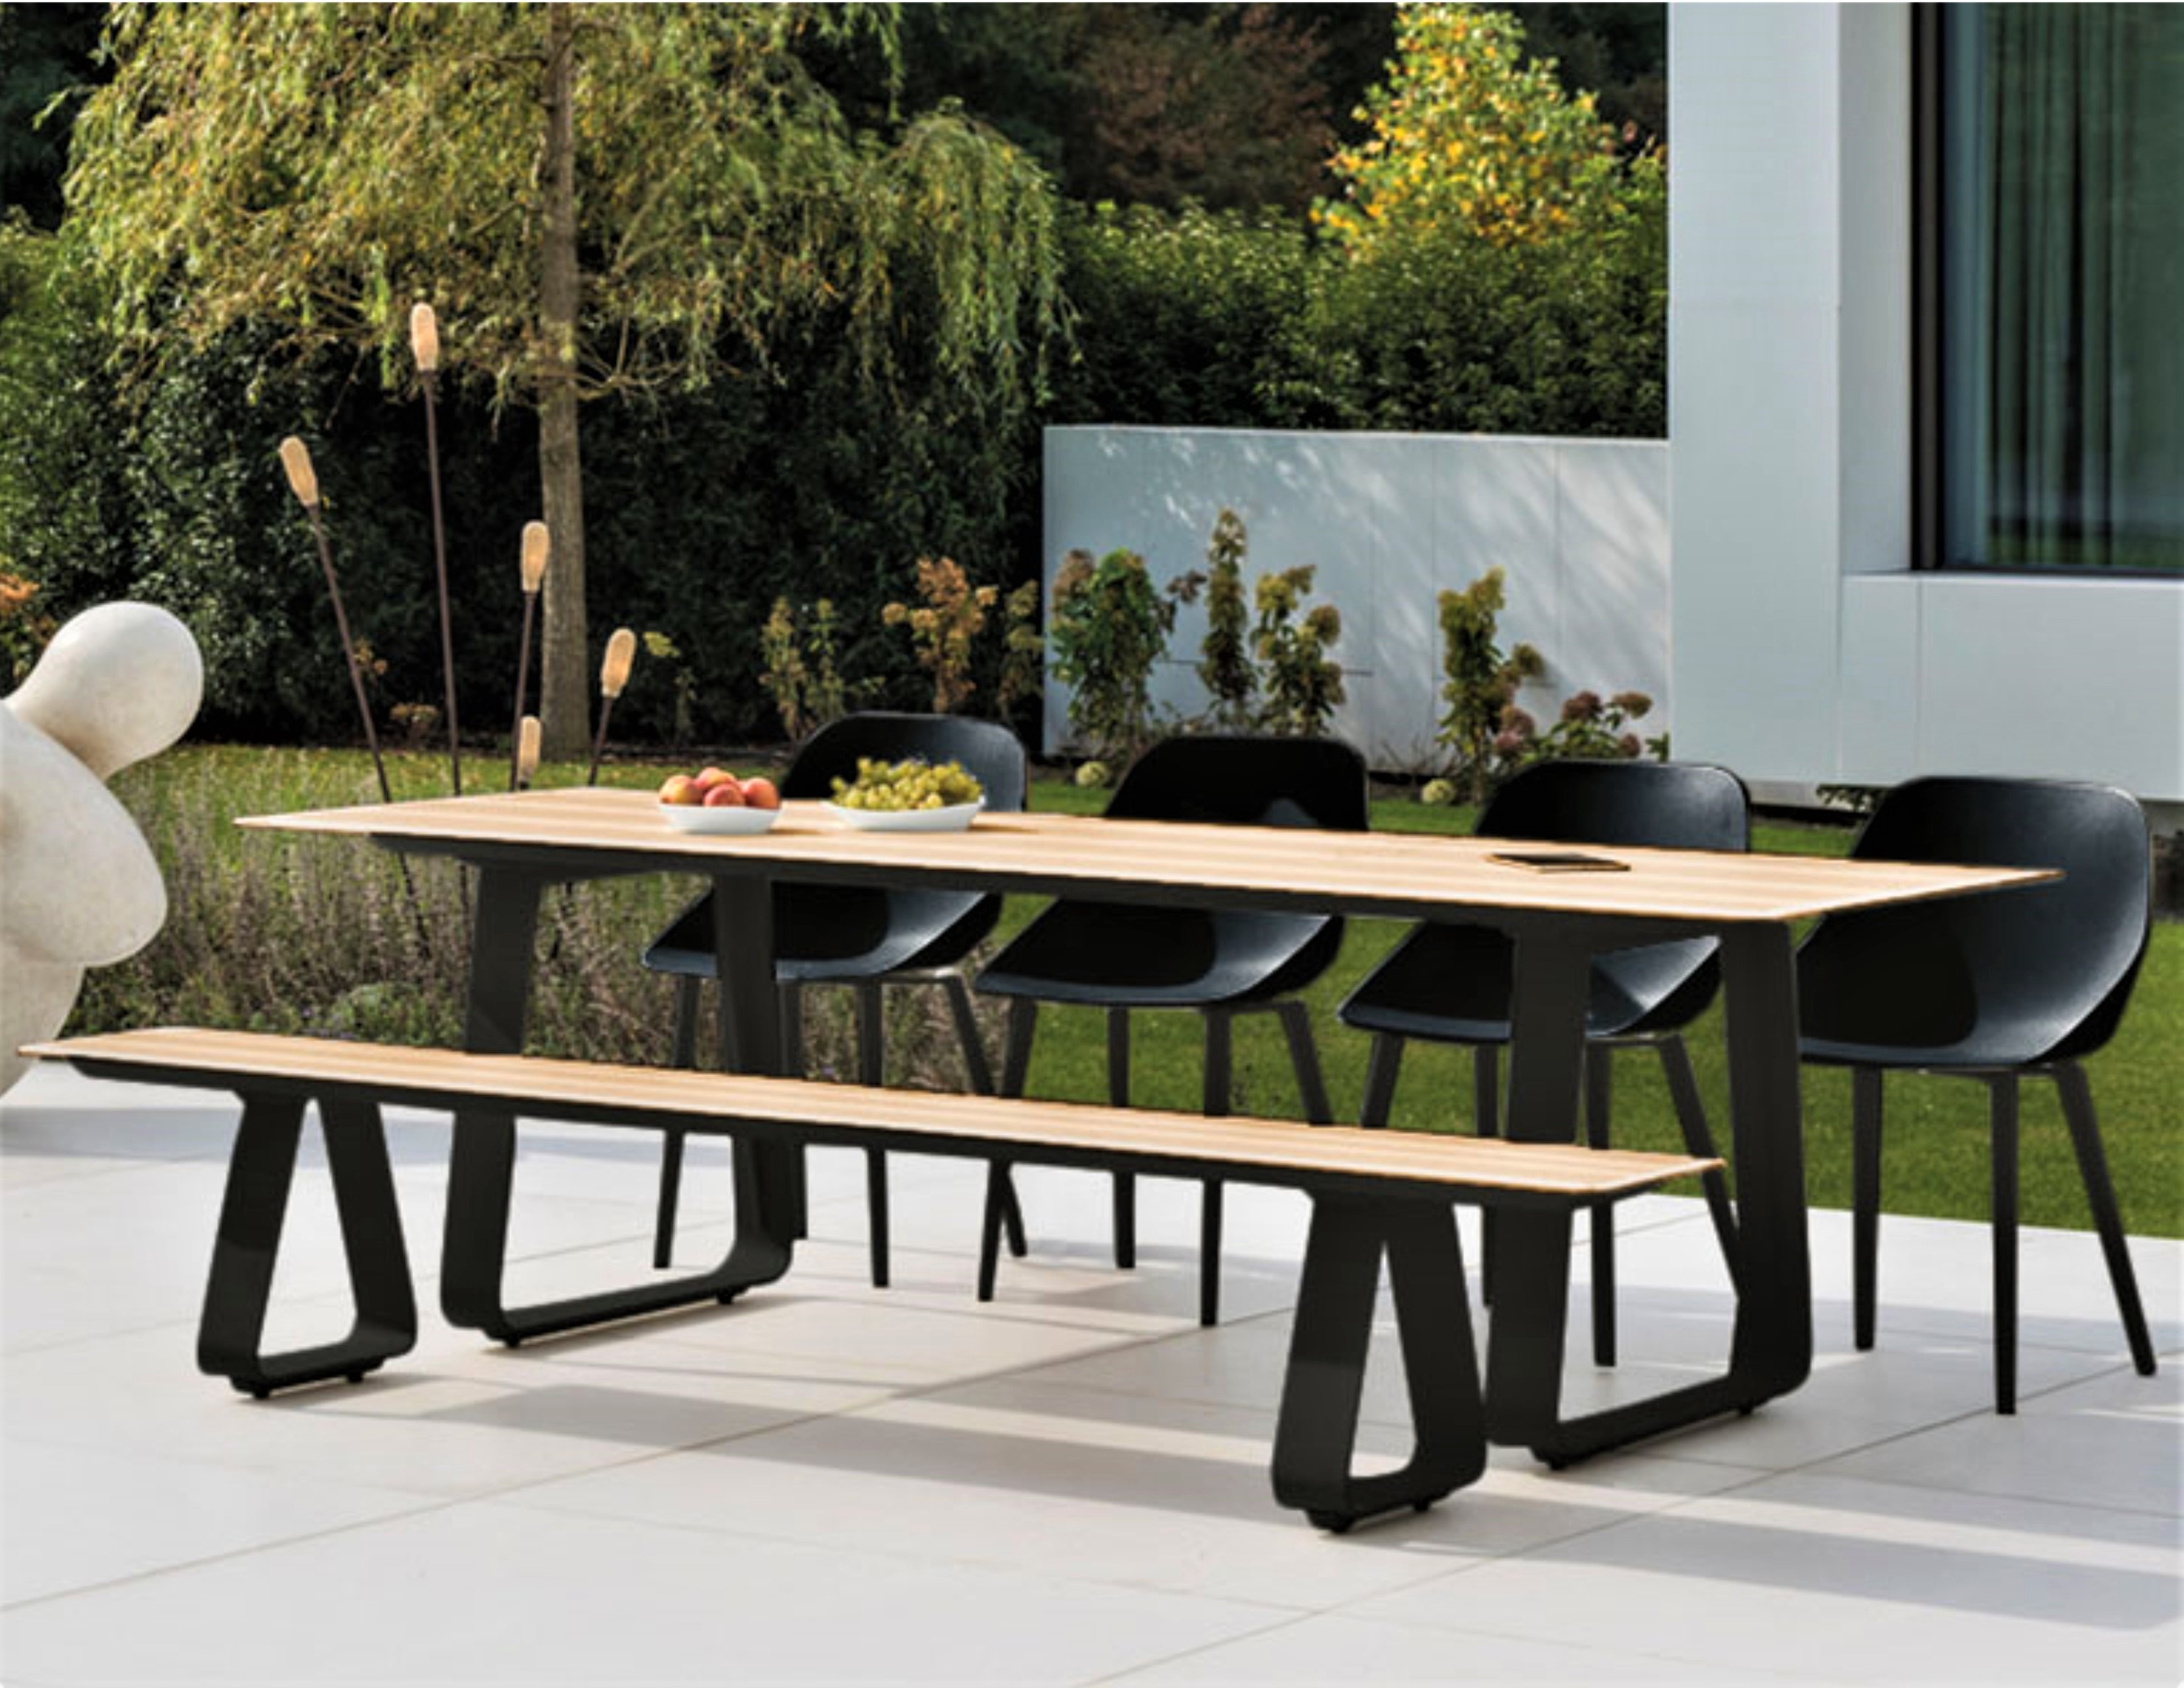 Alfresco Sled Base Dining Table Picnic Bench Chairs Metro